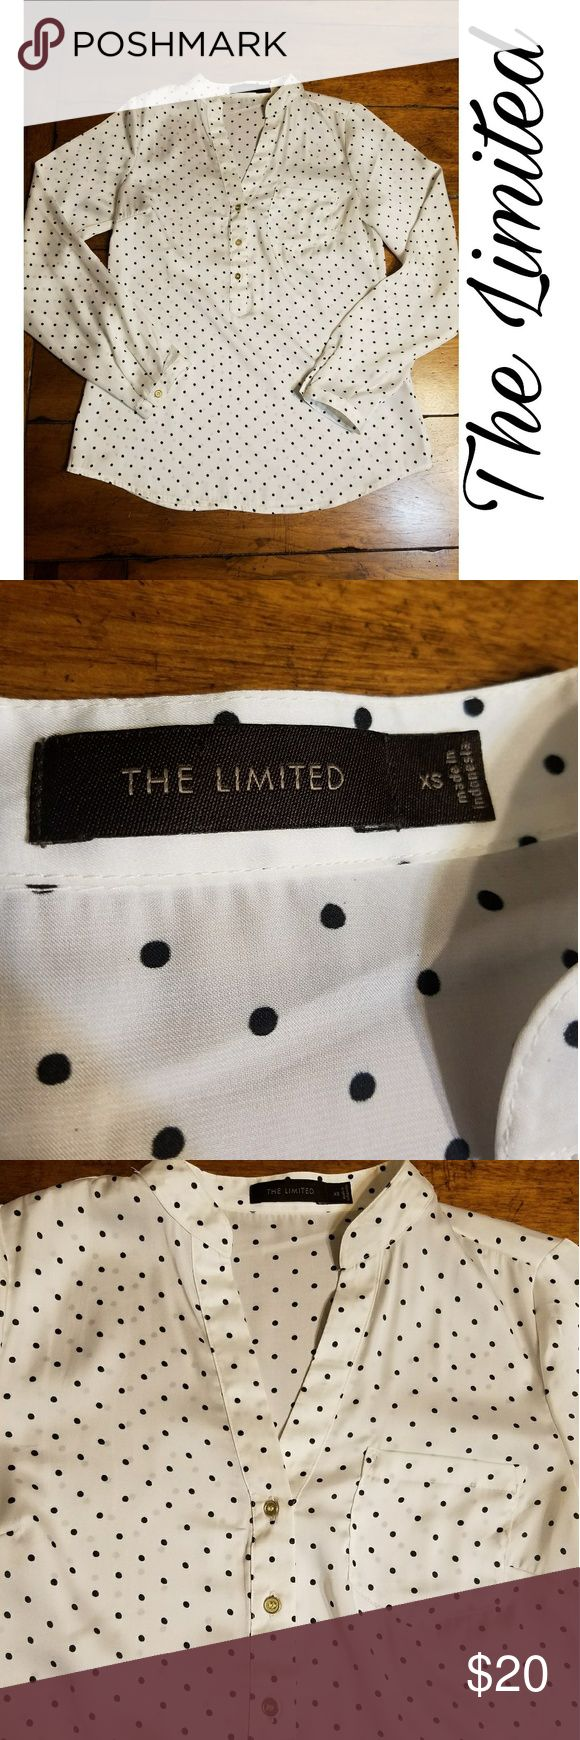 Long sleeve blouse by the limited xs Xs Semi sheer polka dot blouse by the limited. Long sleeve with gold buttons. Excellent condition. No flaws. I'm a top rated suggested user and love to give great deals. If you have any questions about my items don't hesitate to ask. Xoxo Ansley The Limited Tops Blouses